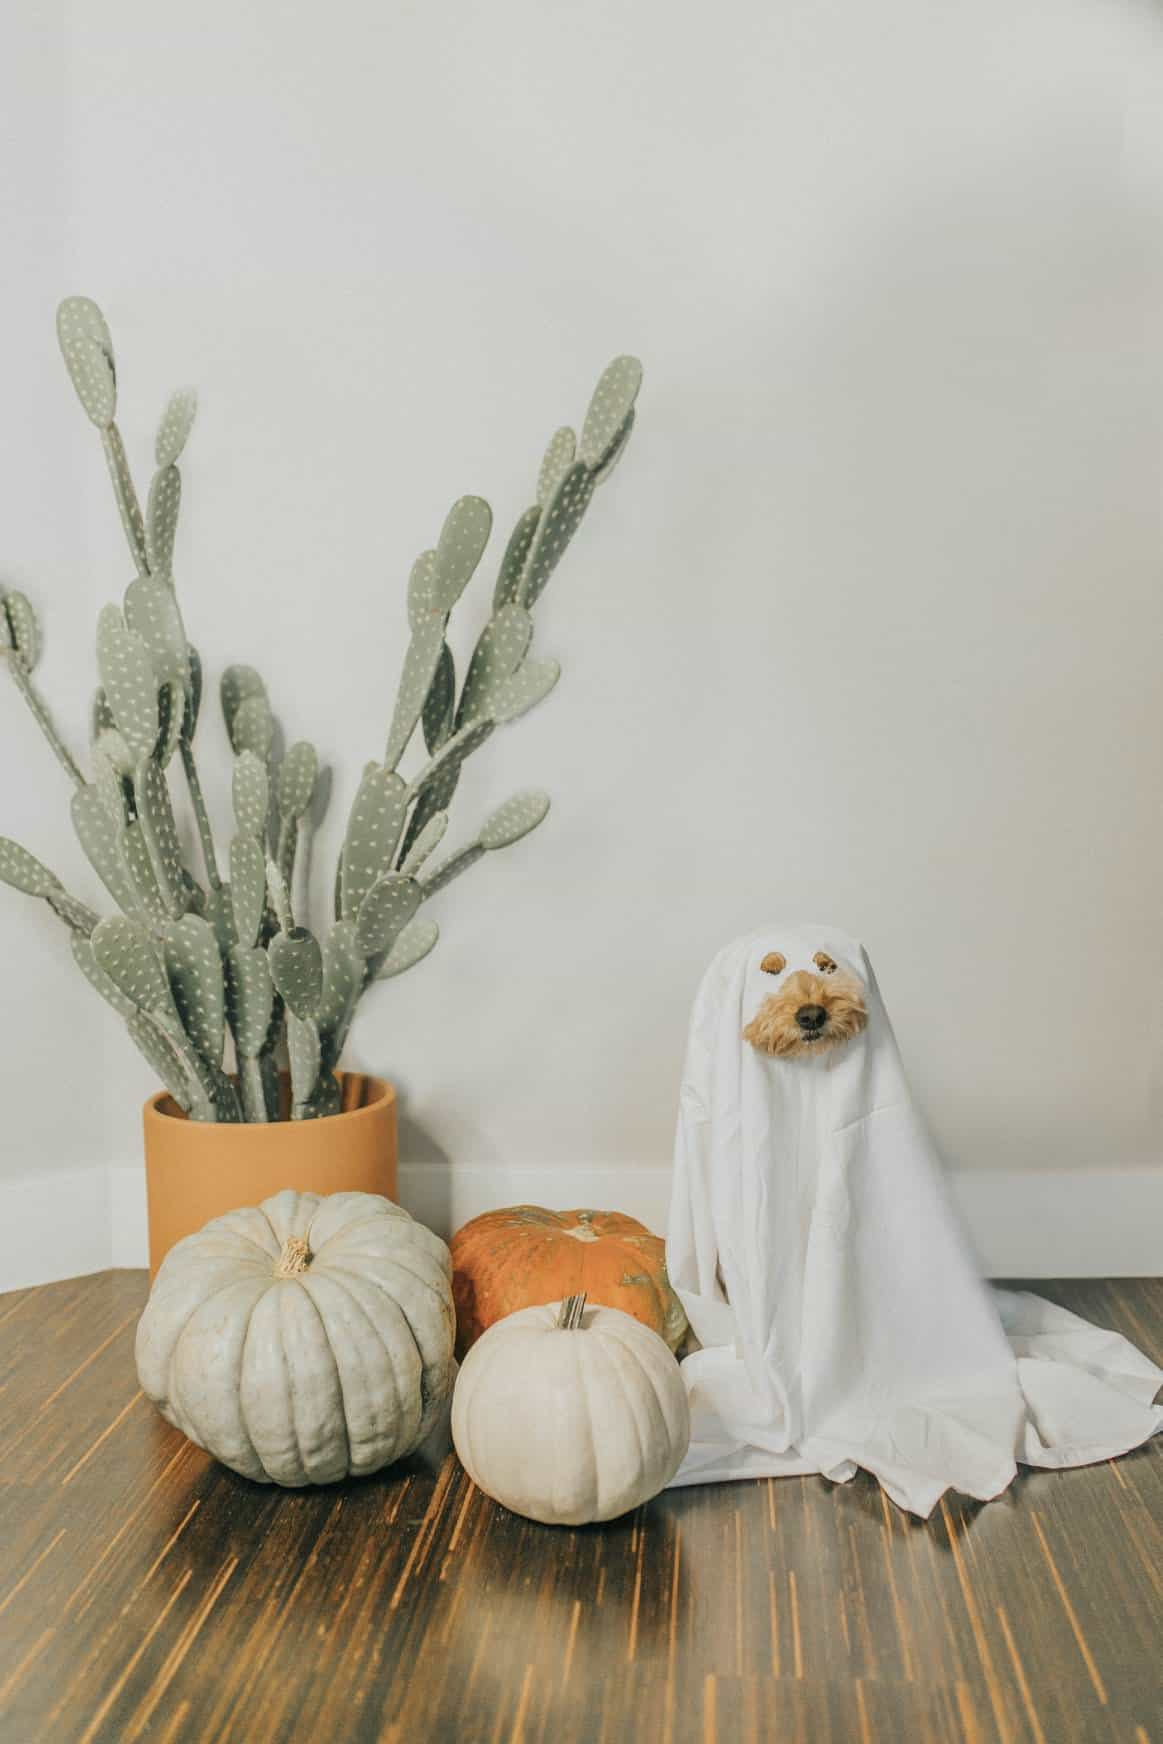 A dog dressed like a ghost stands next to pumpkins and a cactus